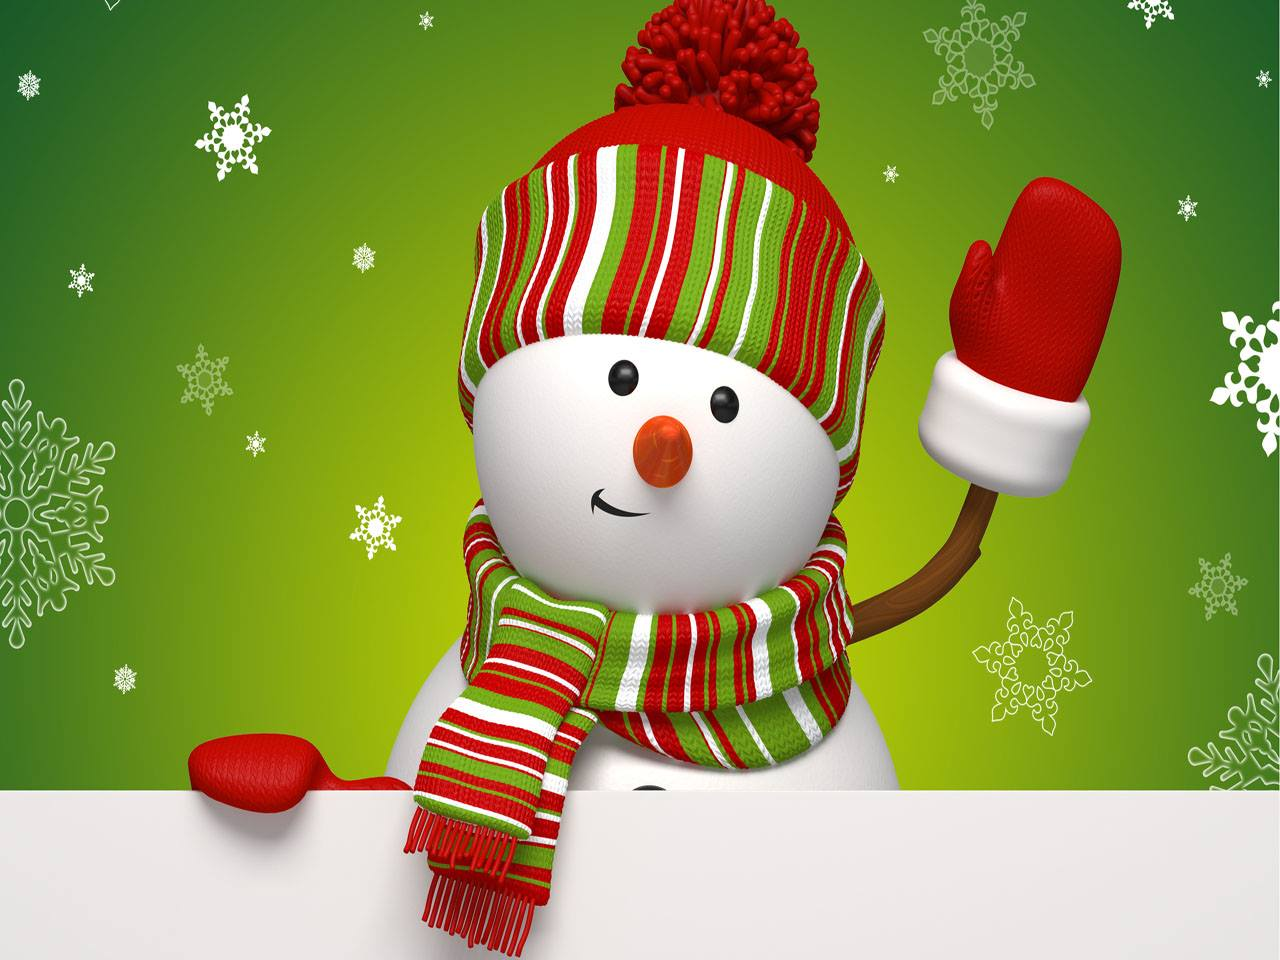 Christmas Profile Pictures For Facebook Free » Profile Pictures Dp